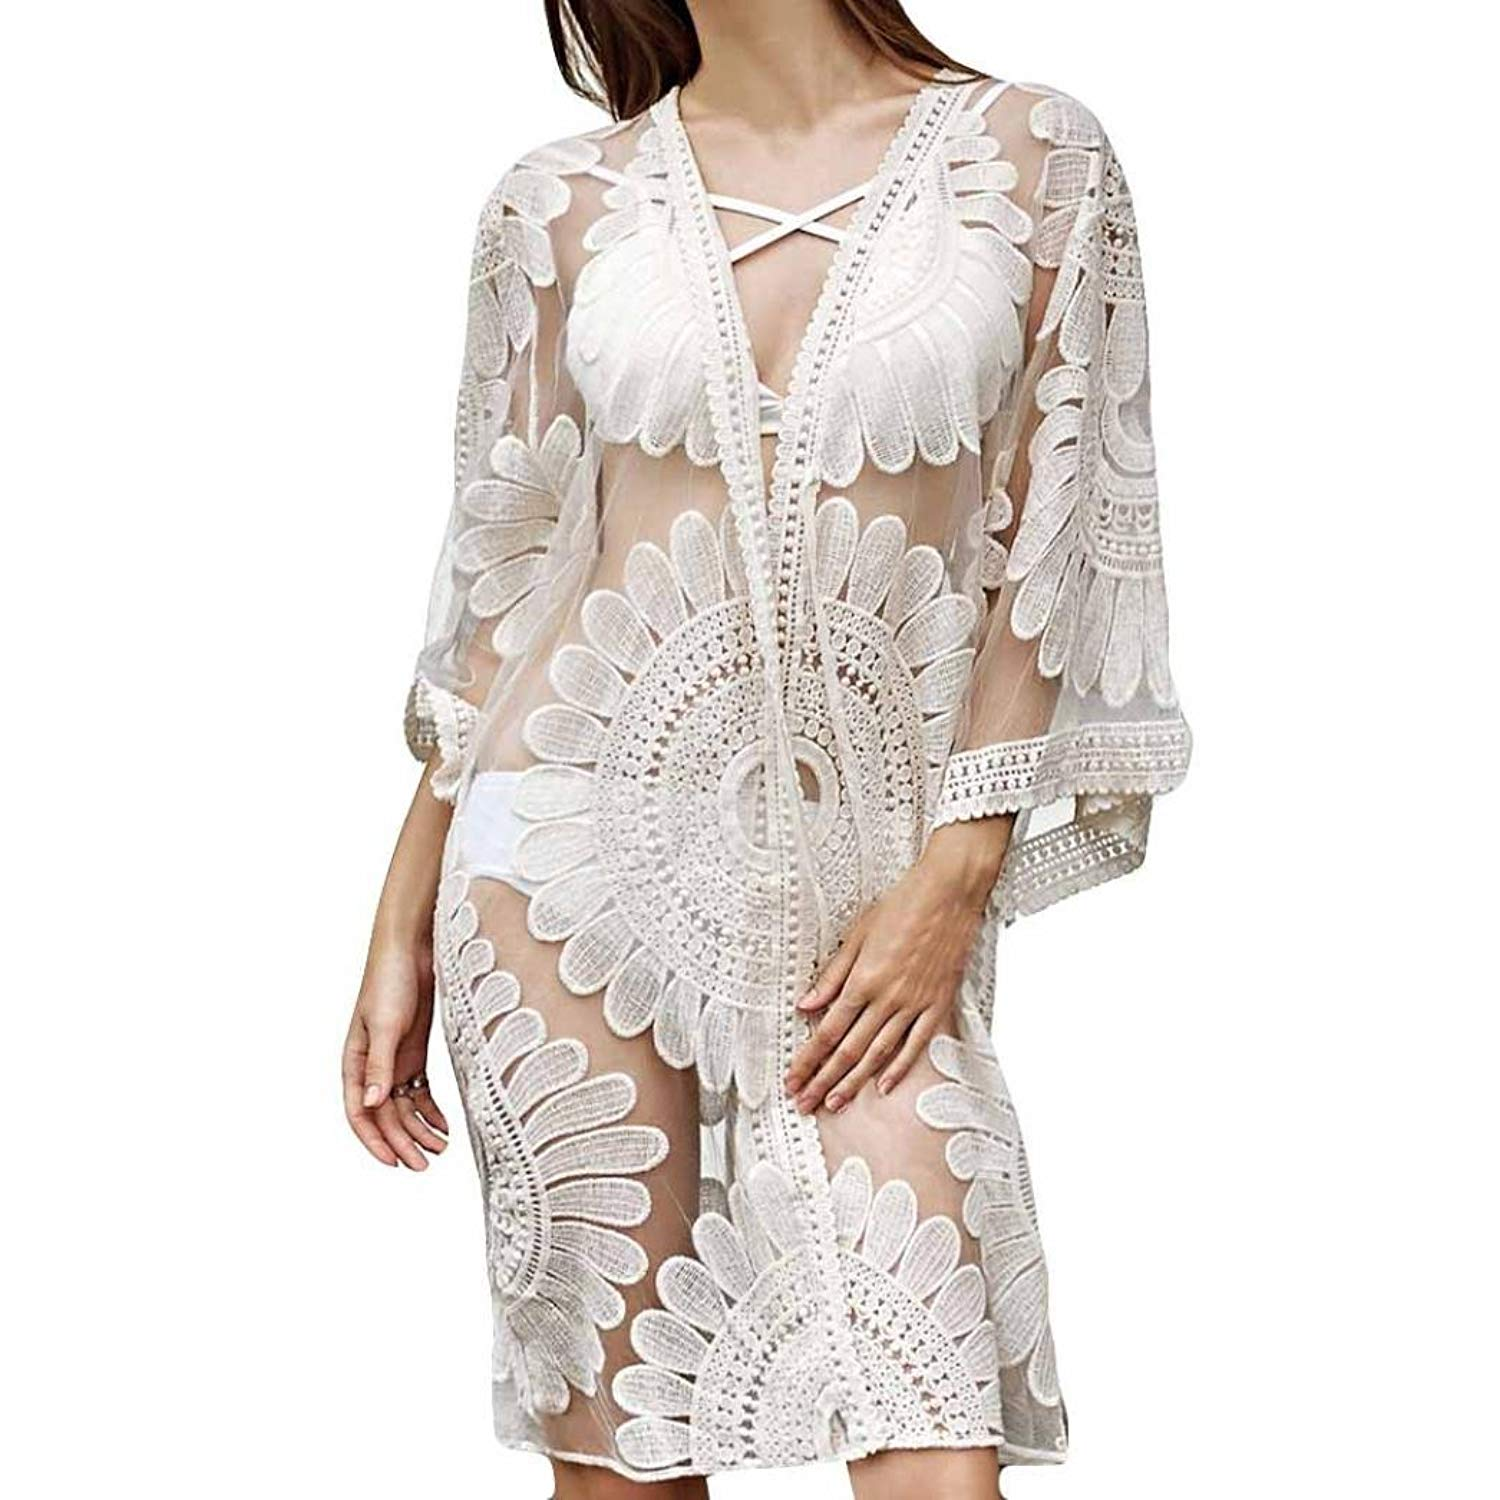 RNTop® Women Smock, Women White Floral Smock Bikini Cardigan Cover up Smock Dress Swimsuit Swimwear Smock Cover up